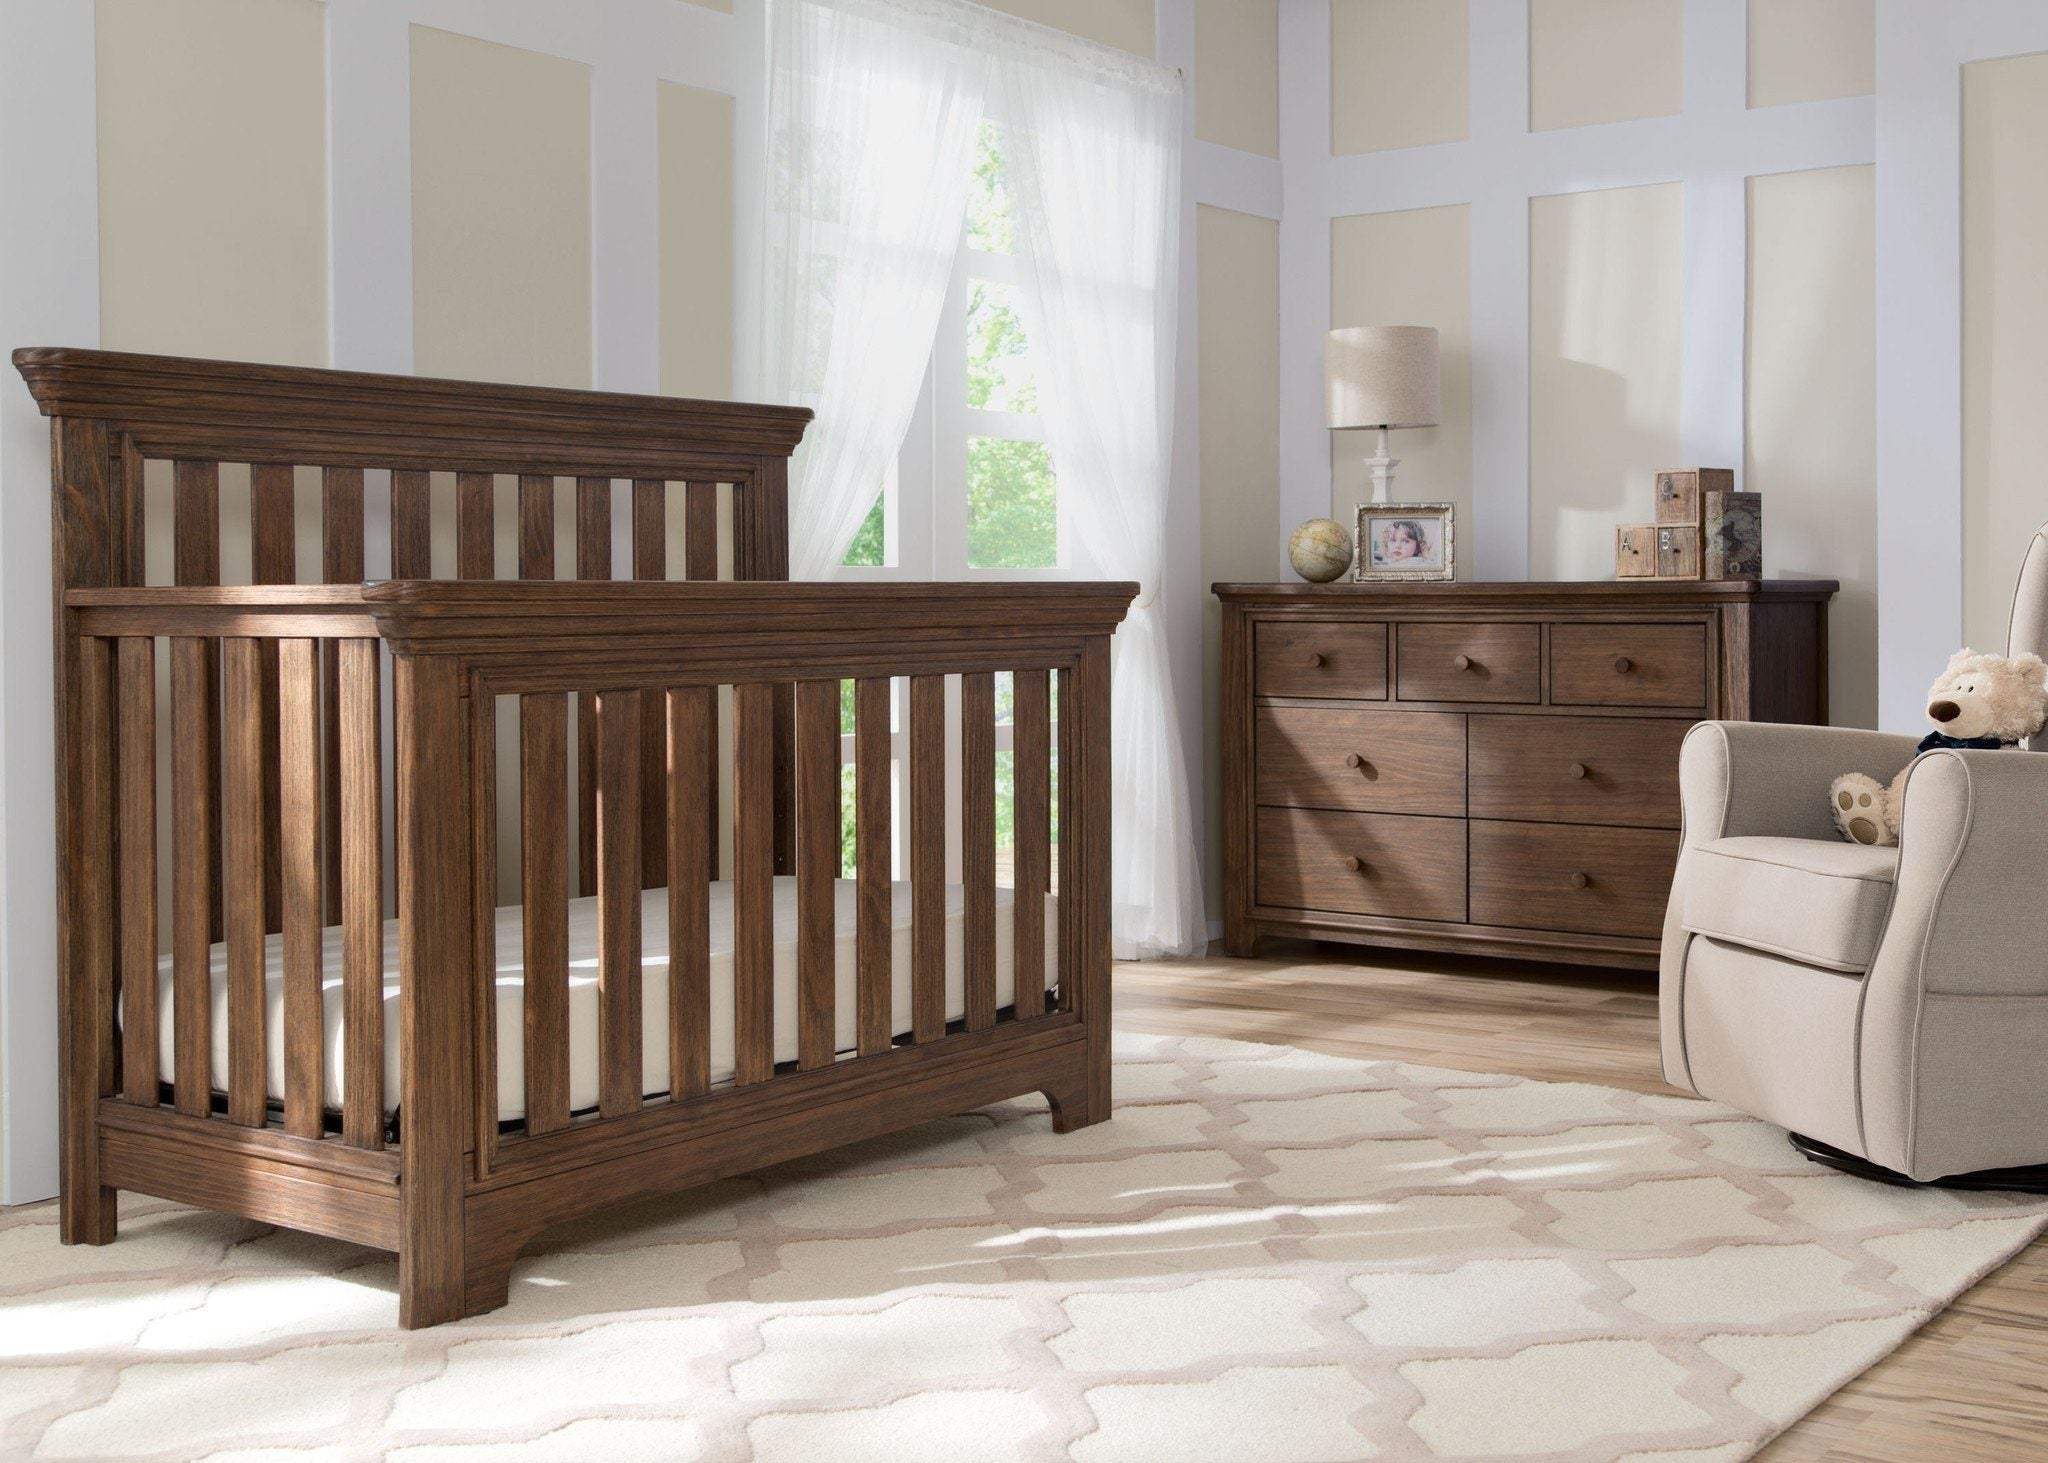 Serta Rustic Oak (229) Langley 4-in-1 Crib Room View c1c for Langley 4-in-1 Crib